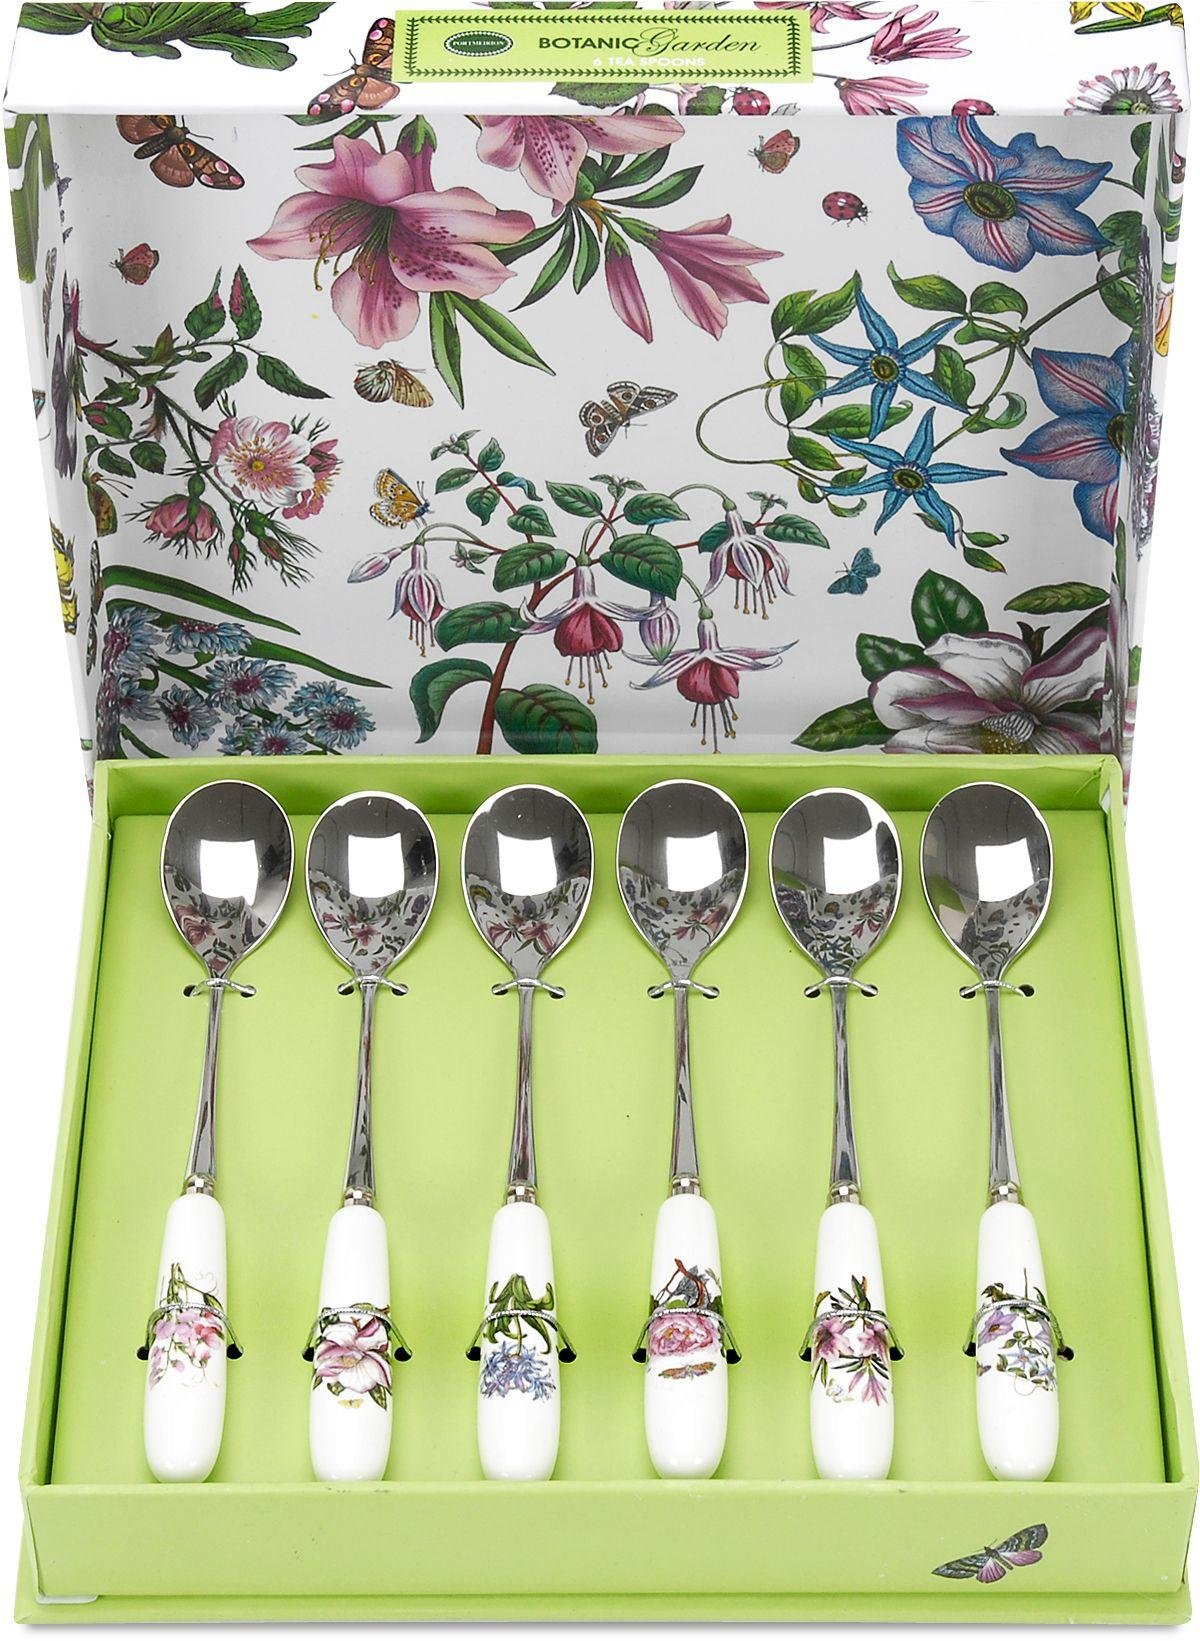 Image of Botanic Garden Set of 6 Teaspoons.